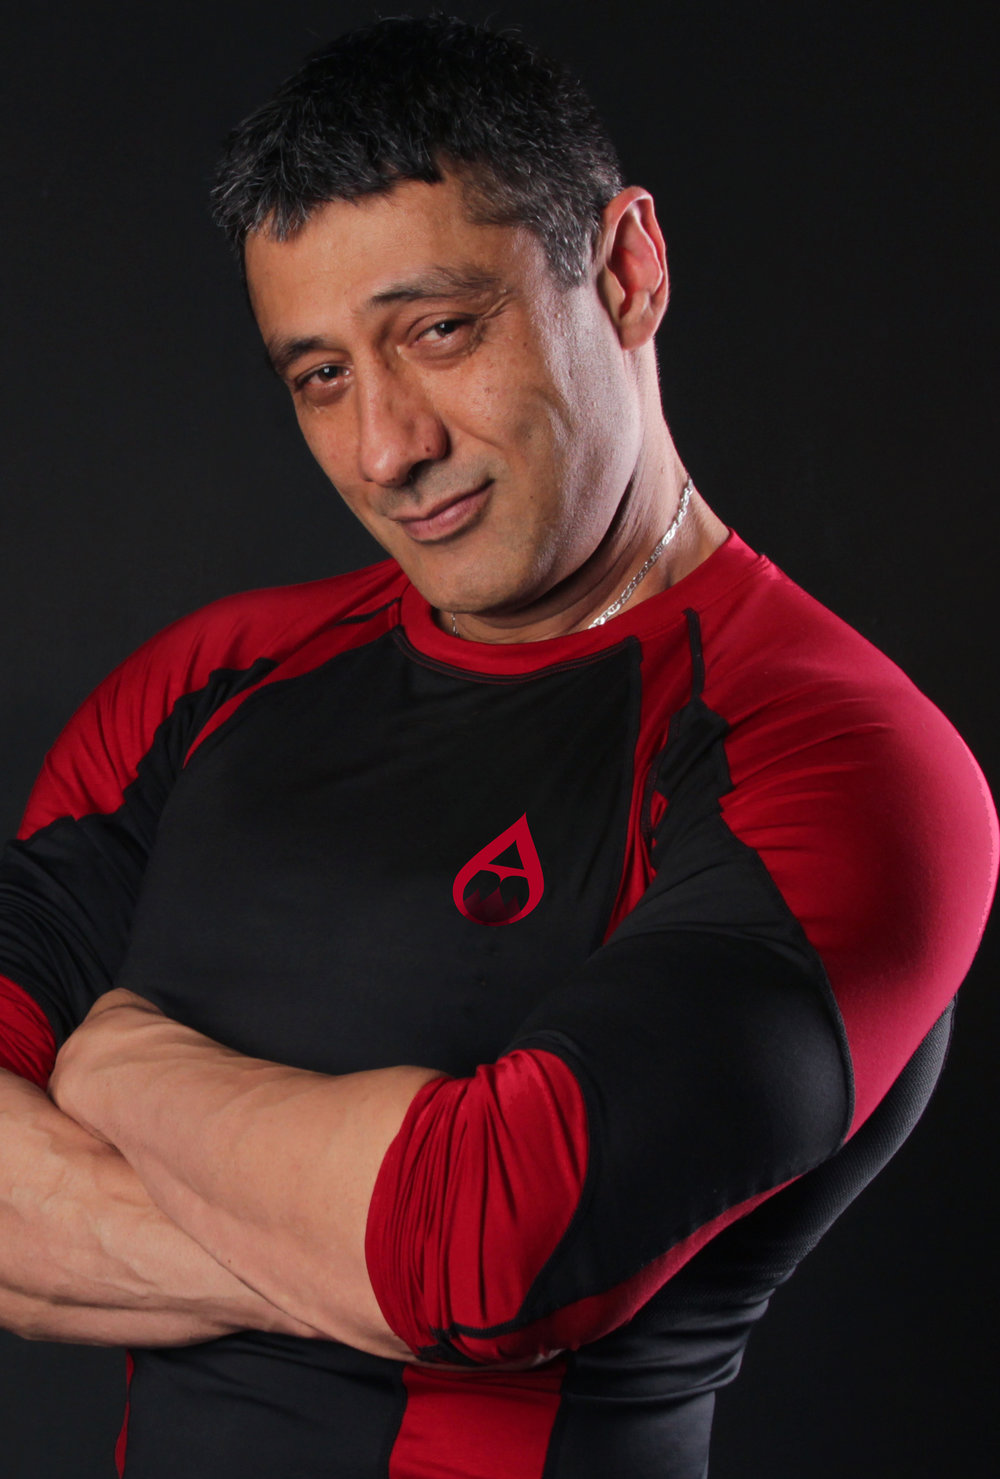 abawi-fit-founder-wade-abawi.jpg